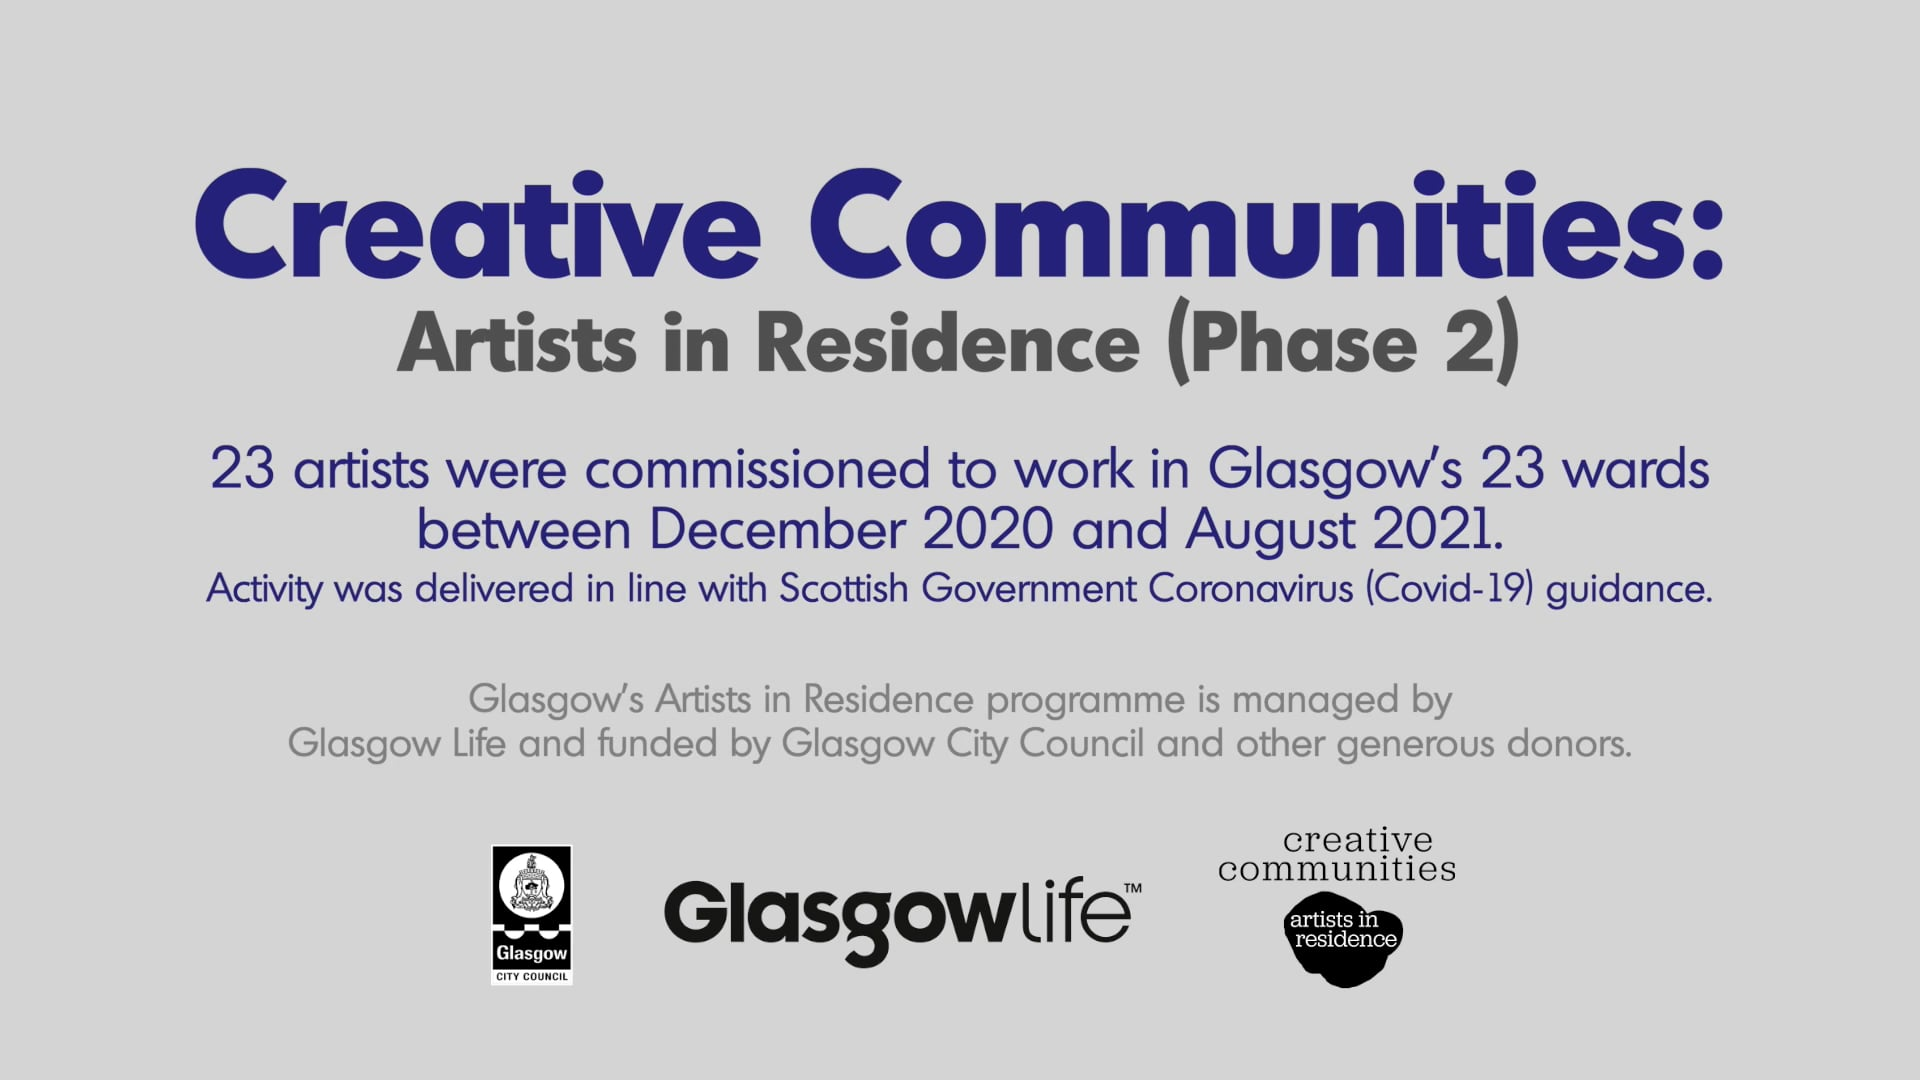 Creative Communities - Artists in Residence (Phase 2)